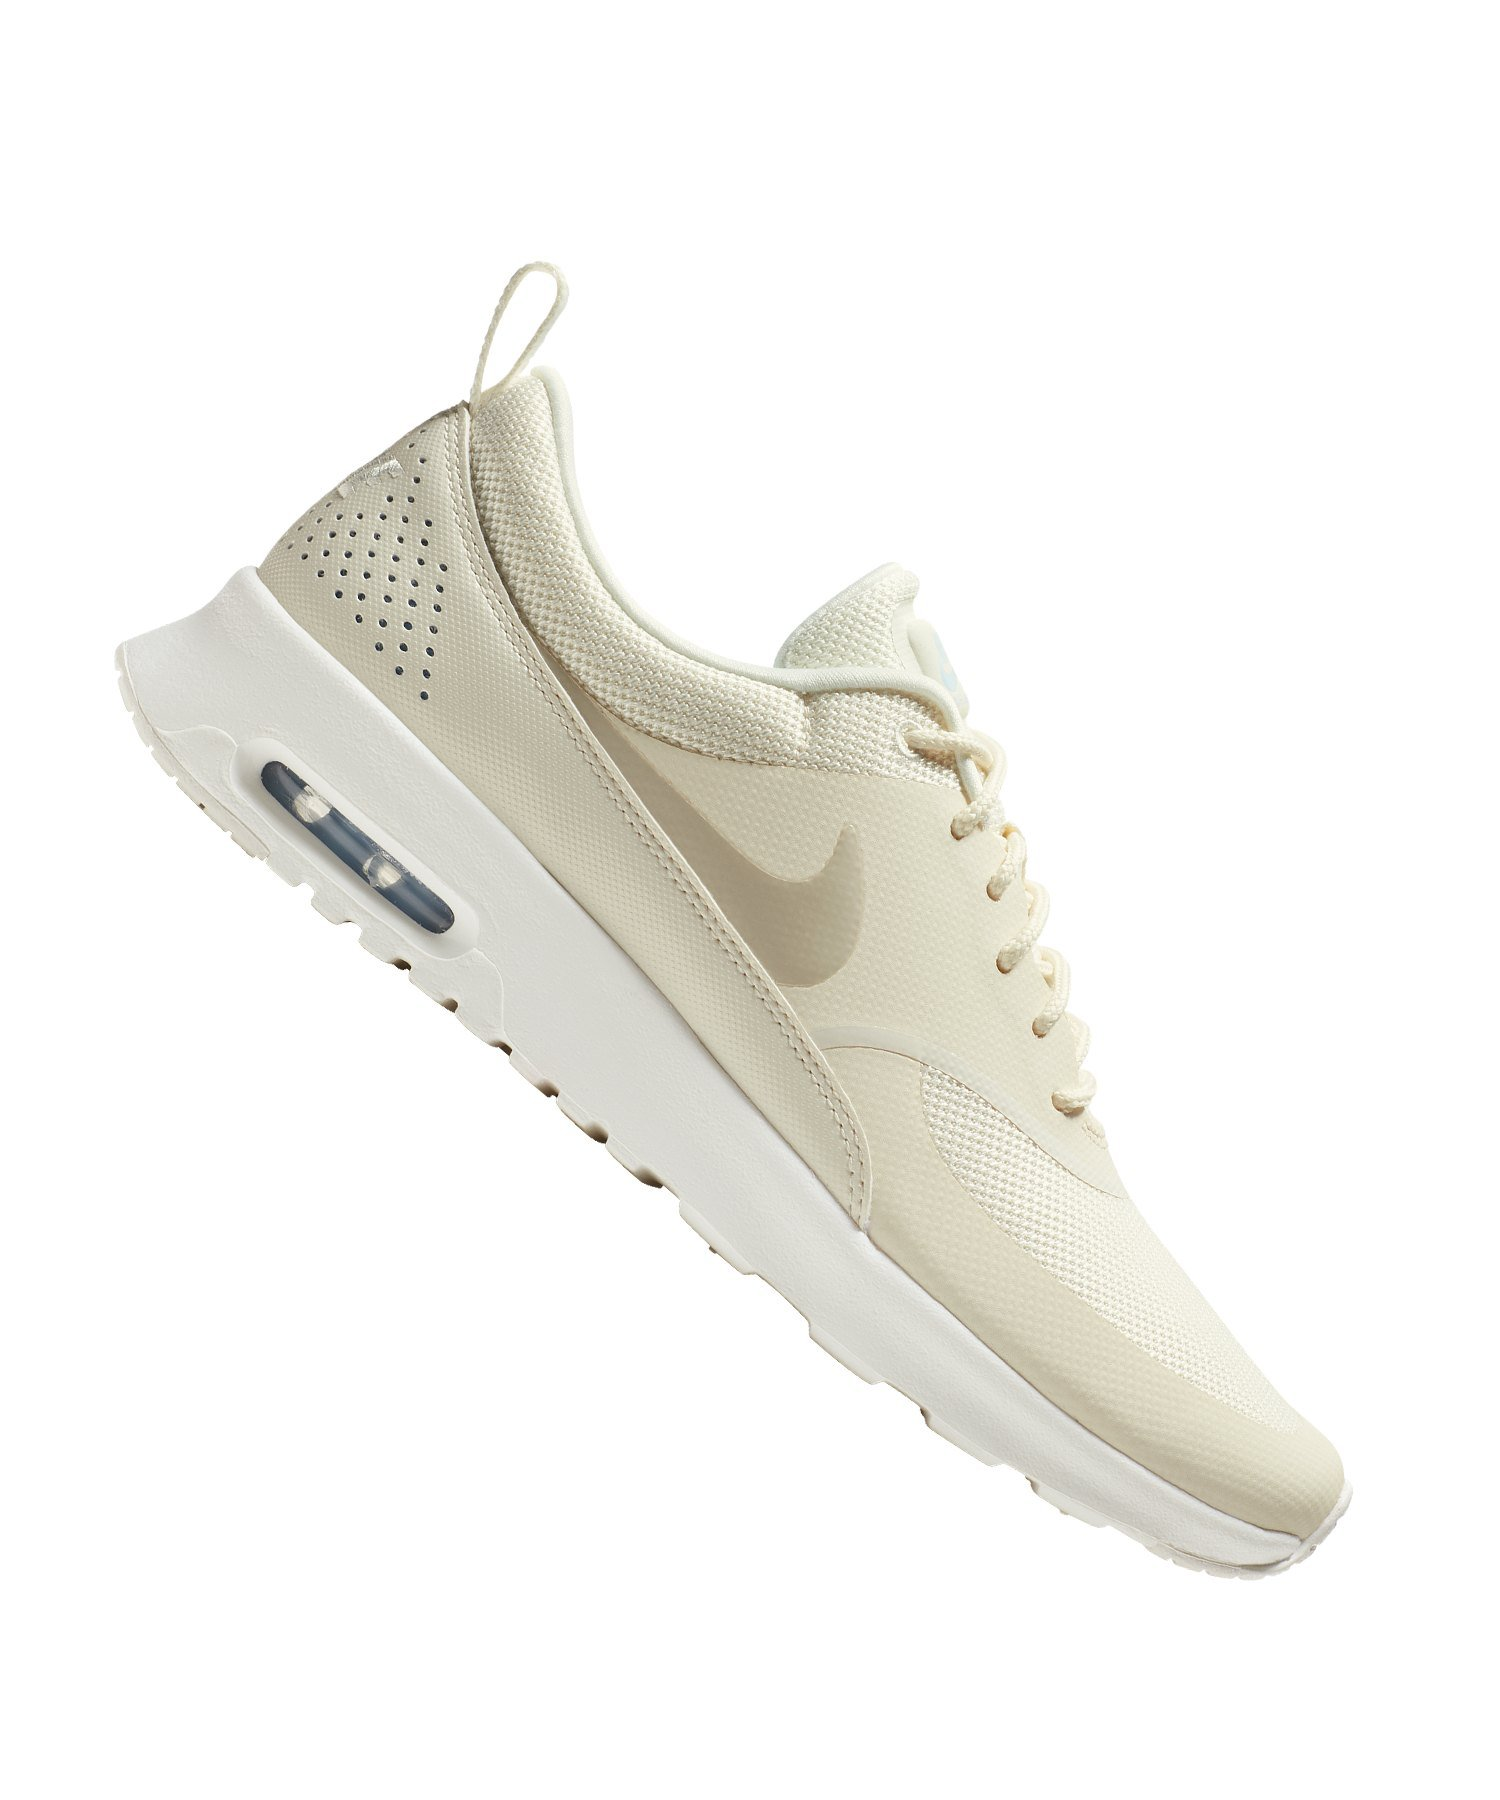 official photos b026d 59c88 Nike Air Max Thea Sneaker Damen Beige F112 - beige